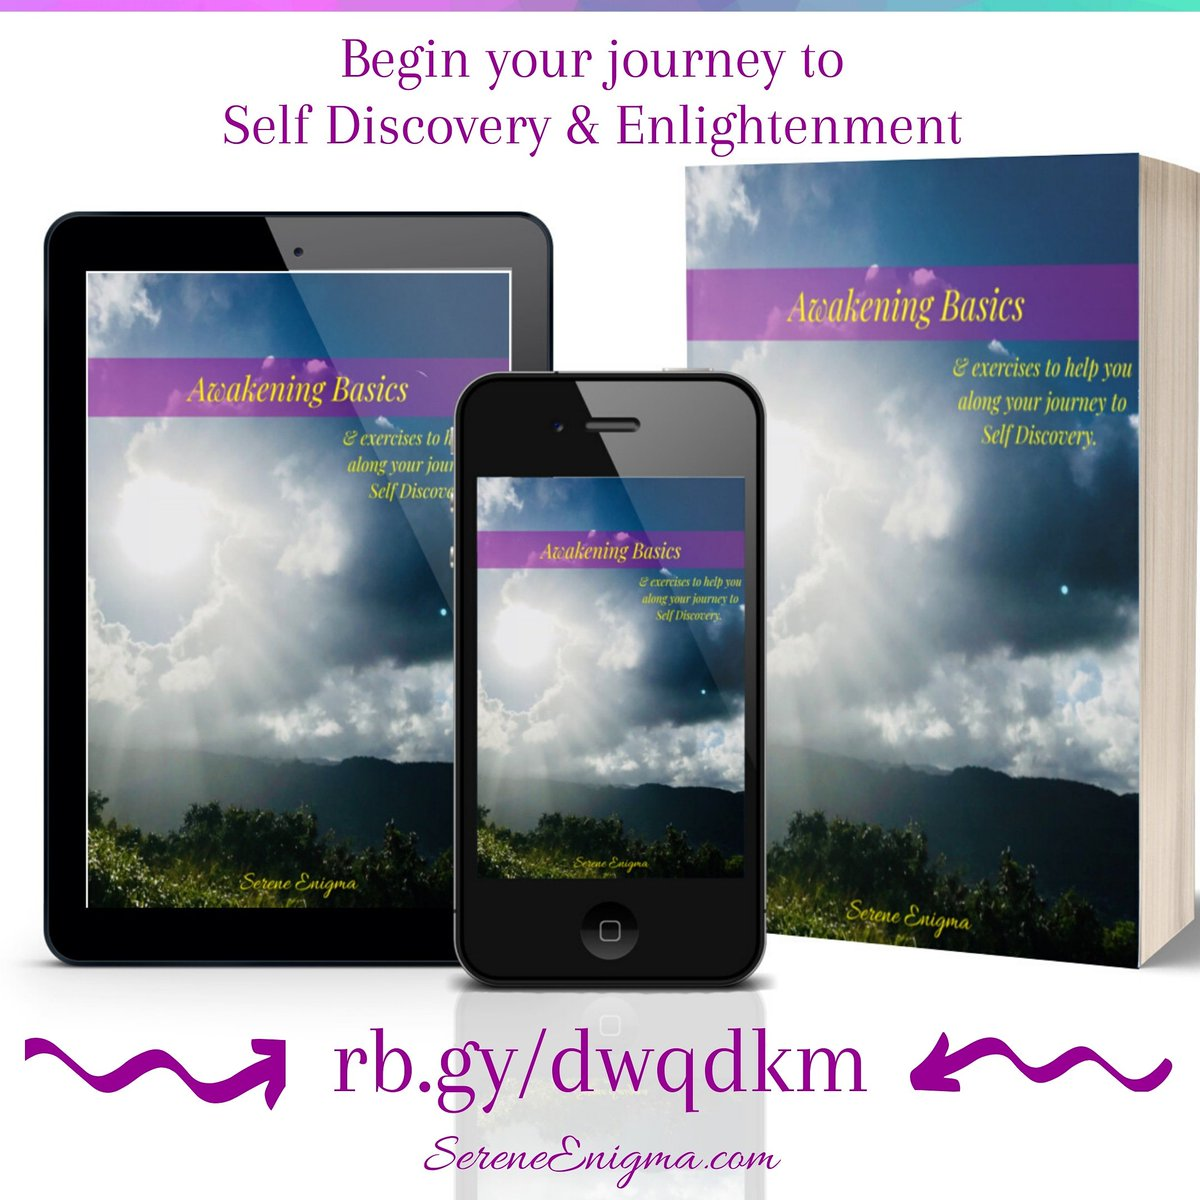 Tips and practical guidance for your awakening journeyJust follow the link http://rb.gy/dwqdkm #sereneenigma #ebook #ebooks #spiritual #spiritualdevelopment #spirtuality #spiritualawakenings #spiritualjourney #spiritualgrowth #enlightenment #takebackyourpowerpic.twitter.com/YrauhSVfwP